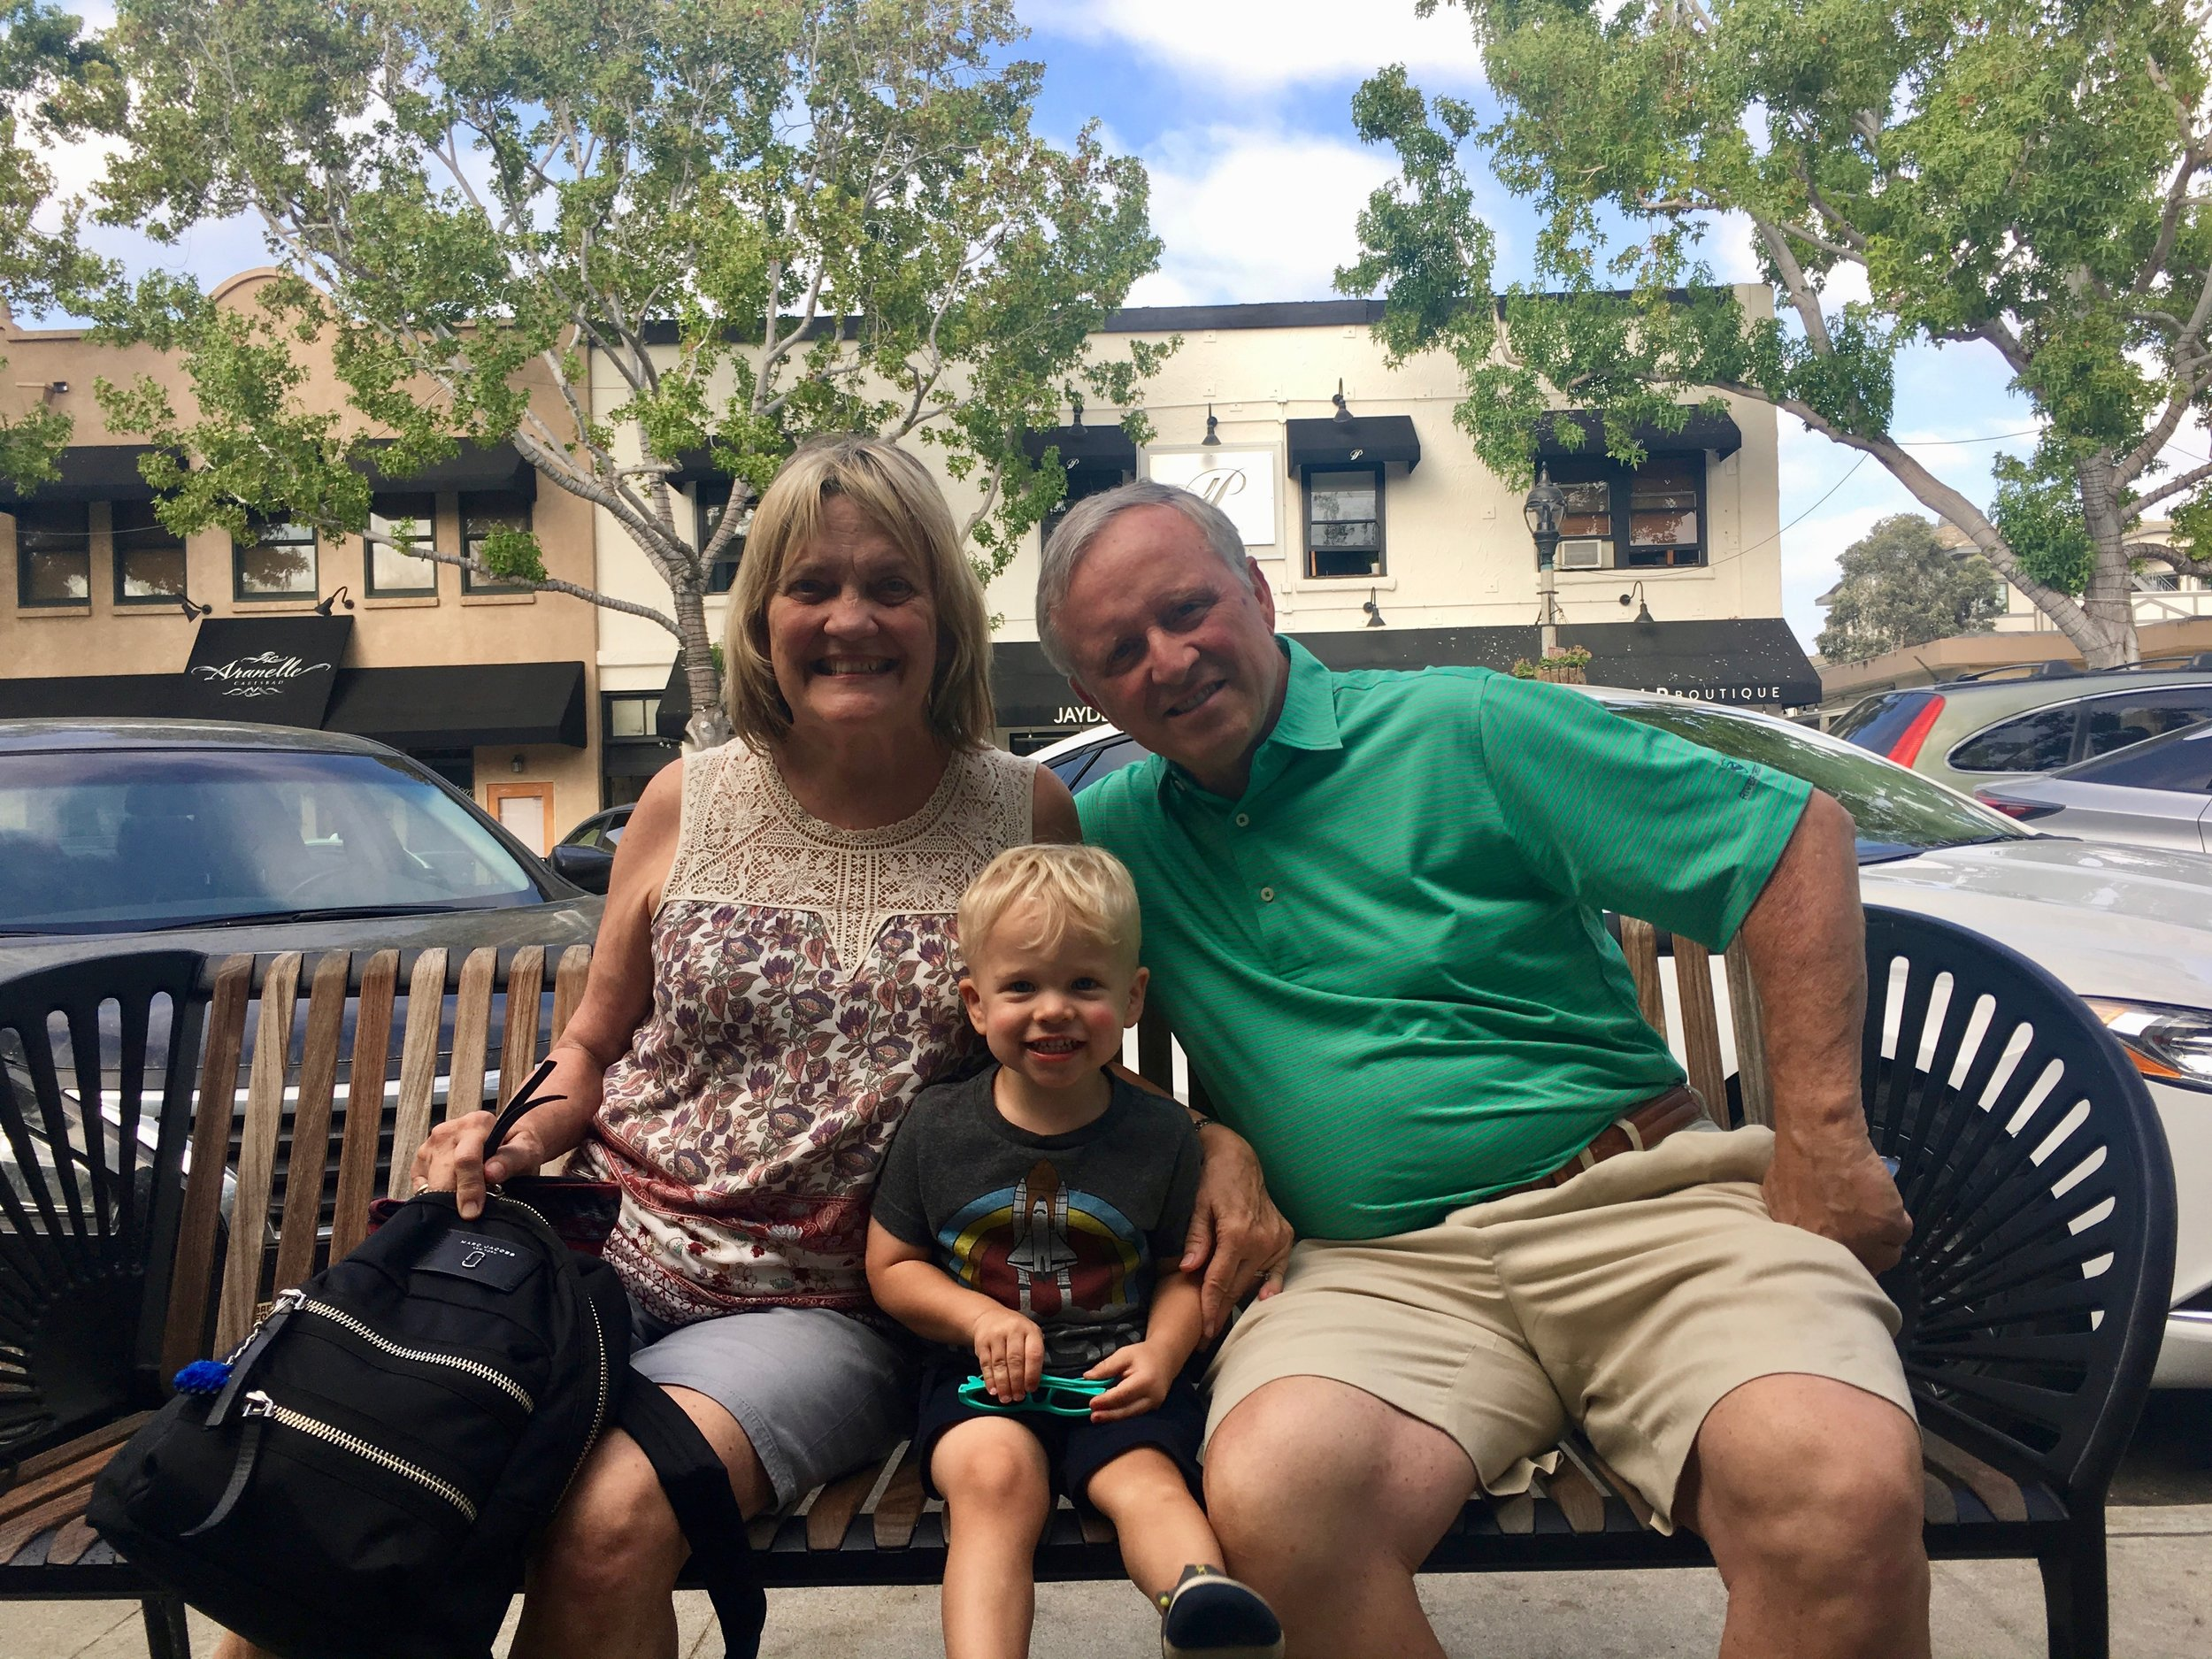 Hanging with the Grandparents in Carlsbad